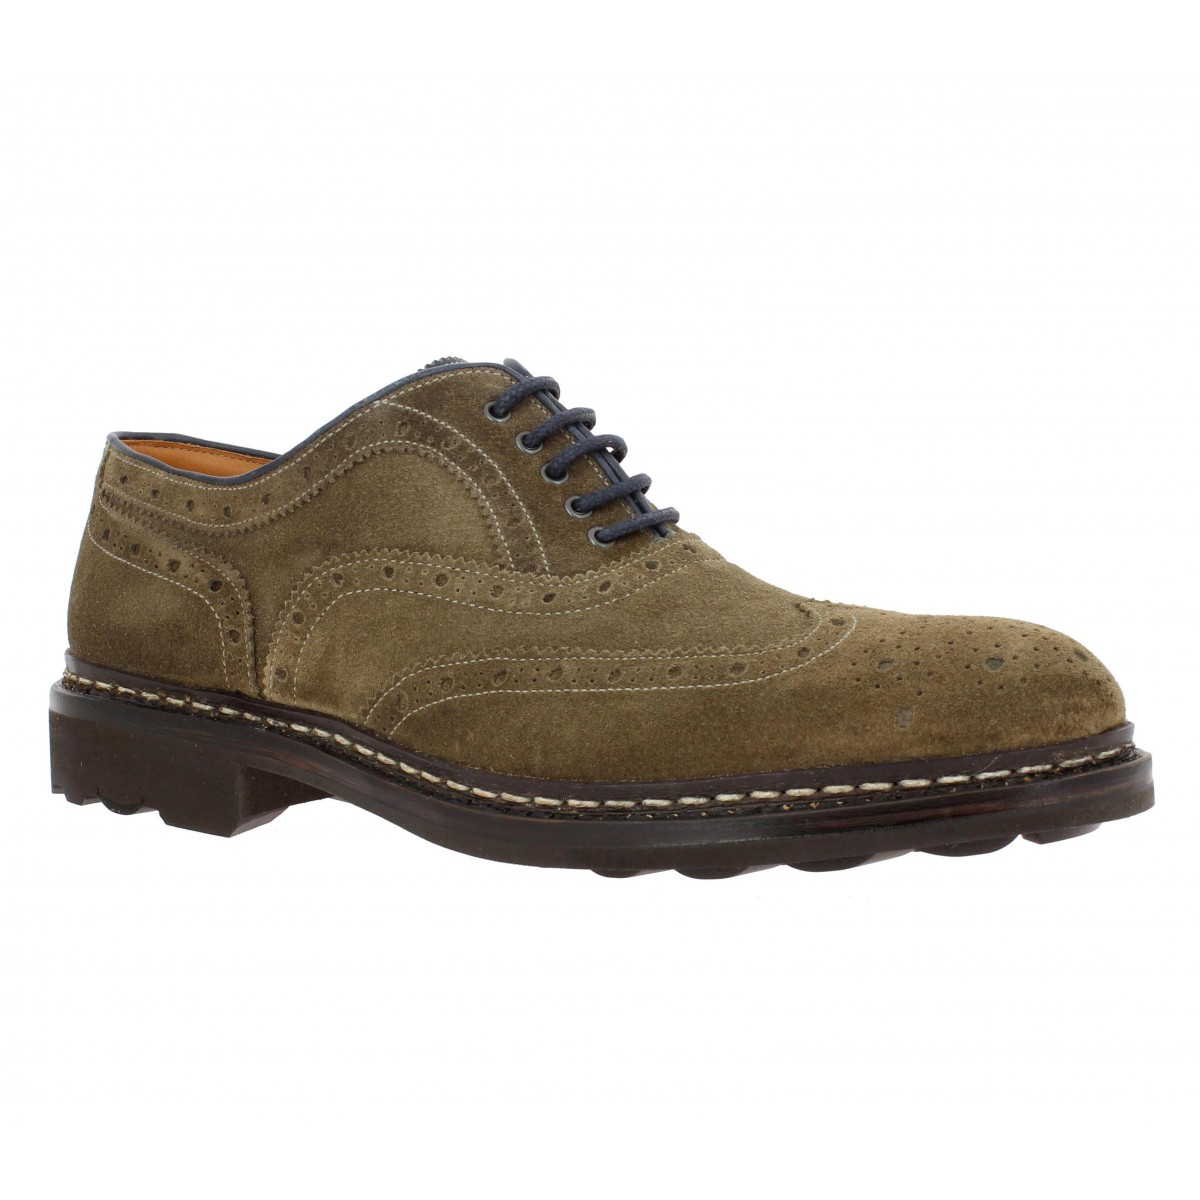 Chaussures à lacets HESCHUNG Owen velours Homme Taupe